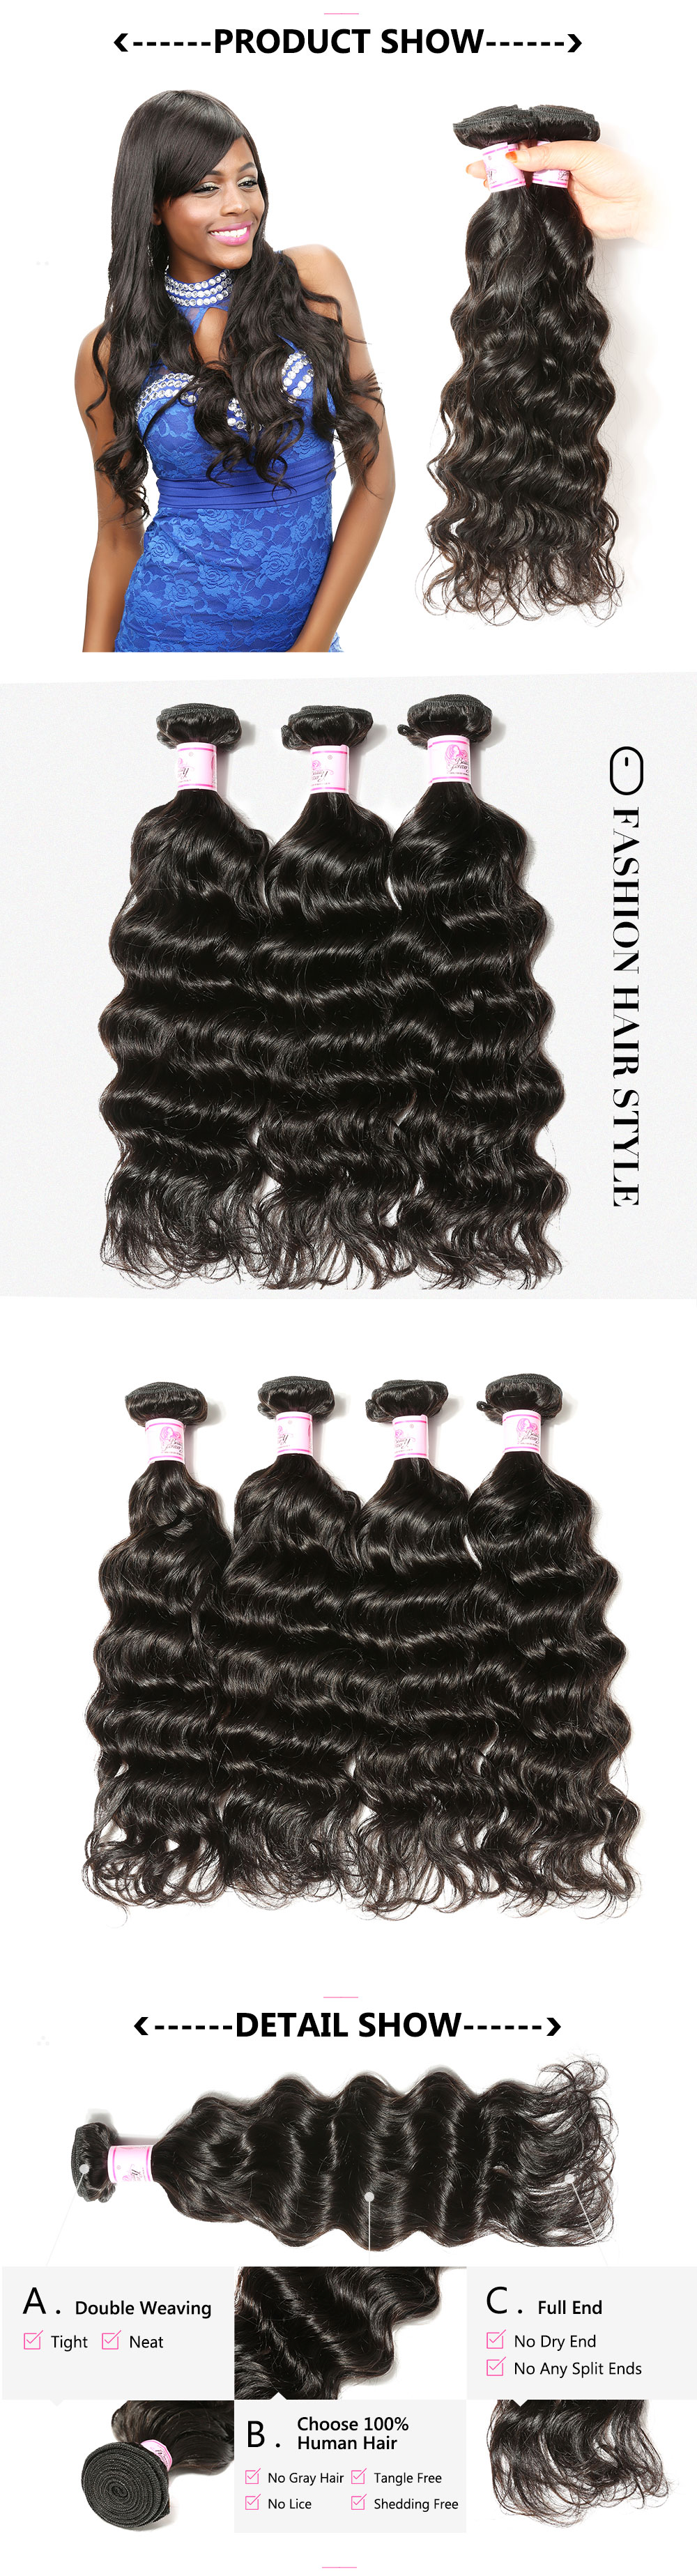 Unprocessed Indian Virgin Human Hair